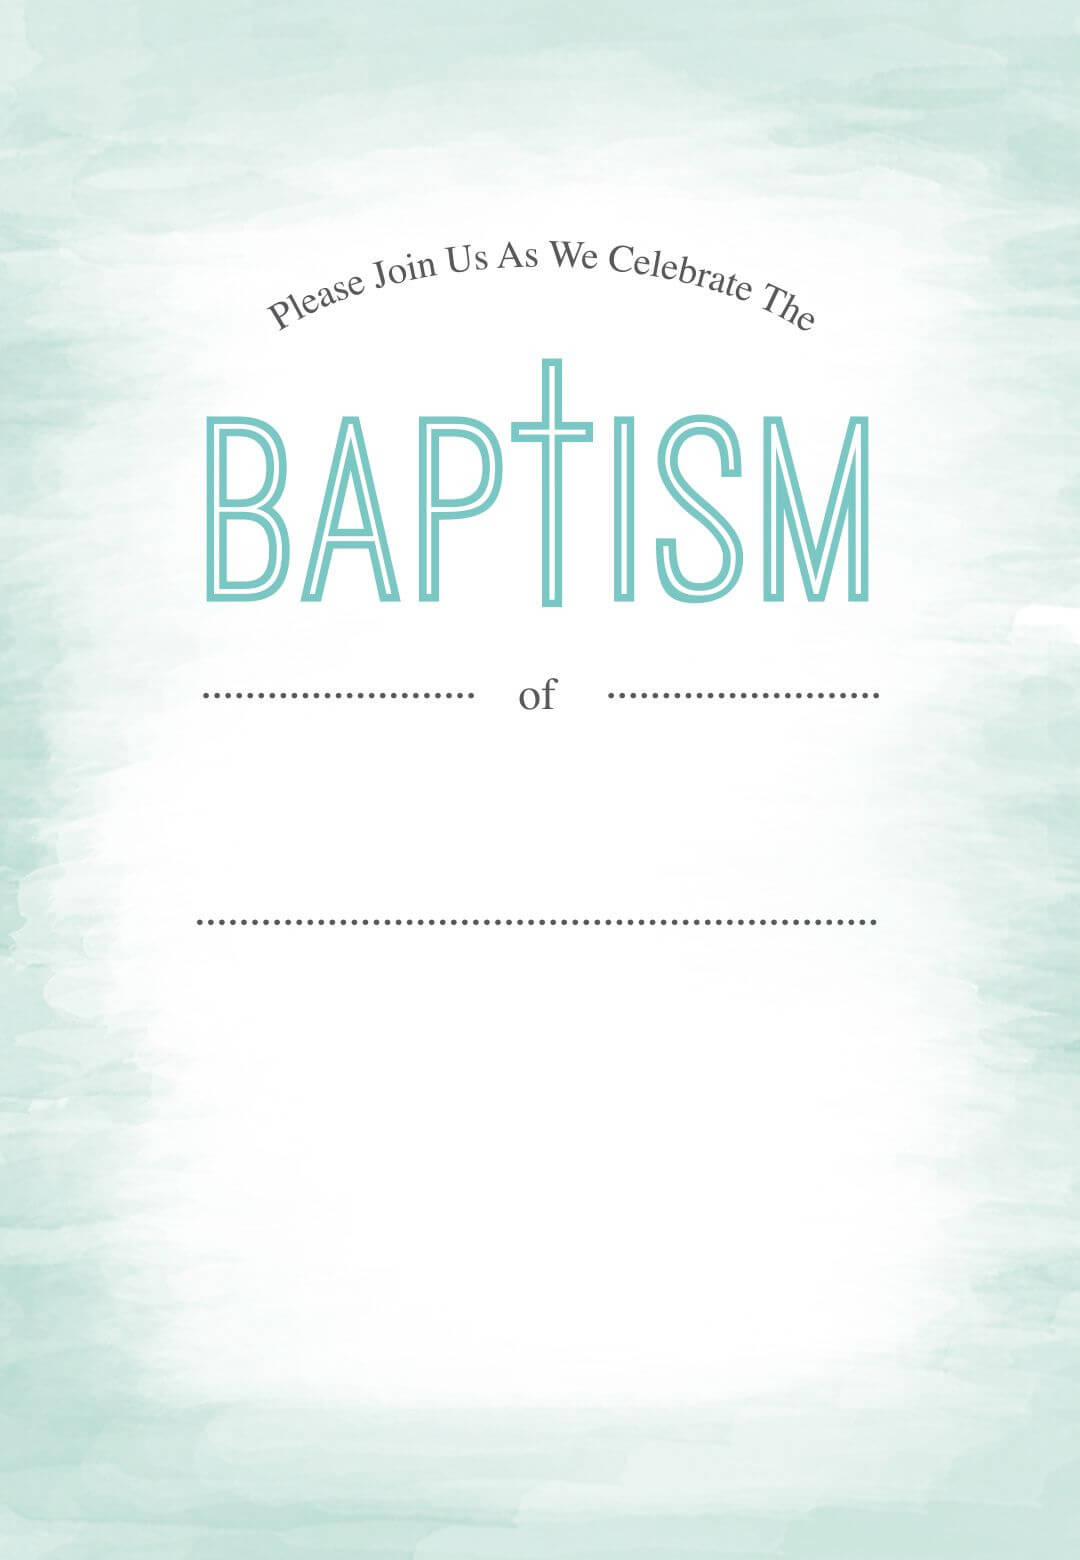 Water - Baptism & Christening Invitation Template (Free Intended For Blank Christening Invitation Templates